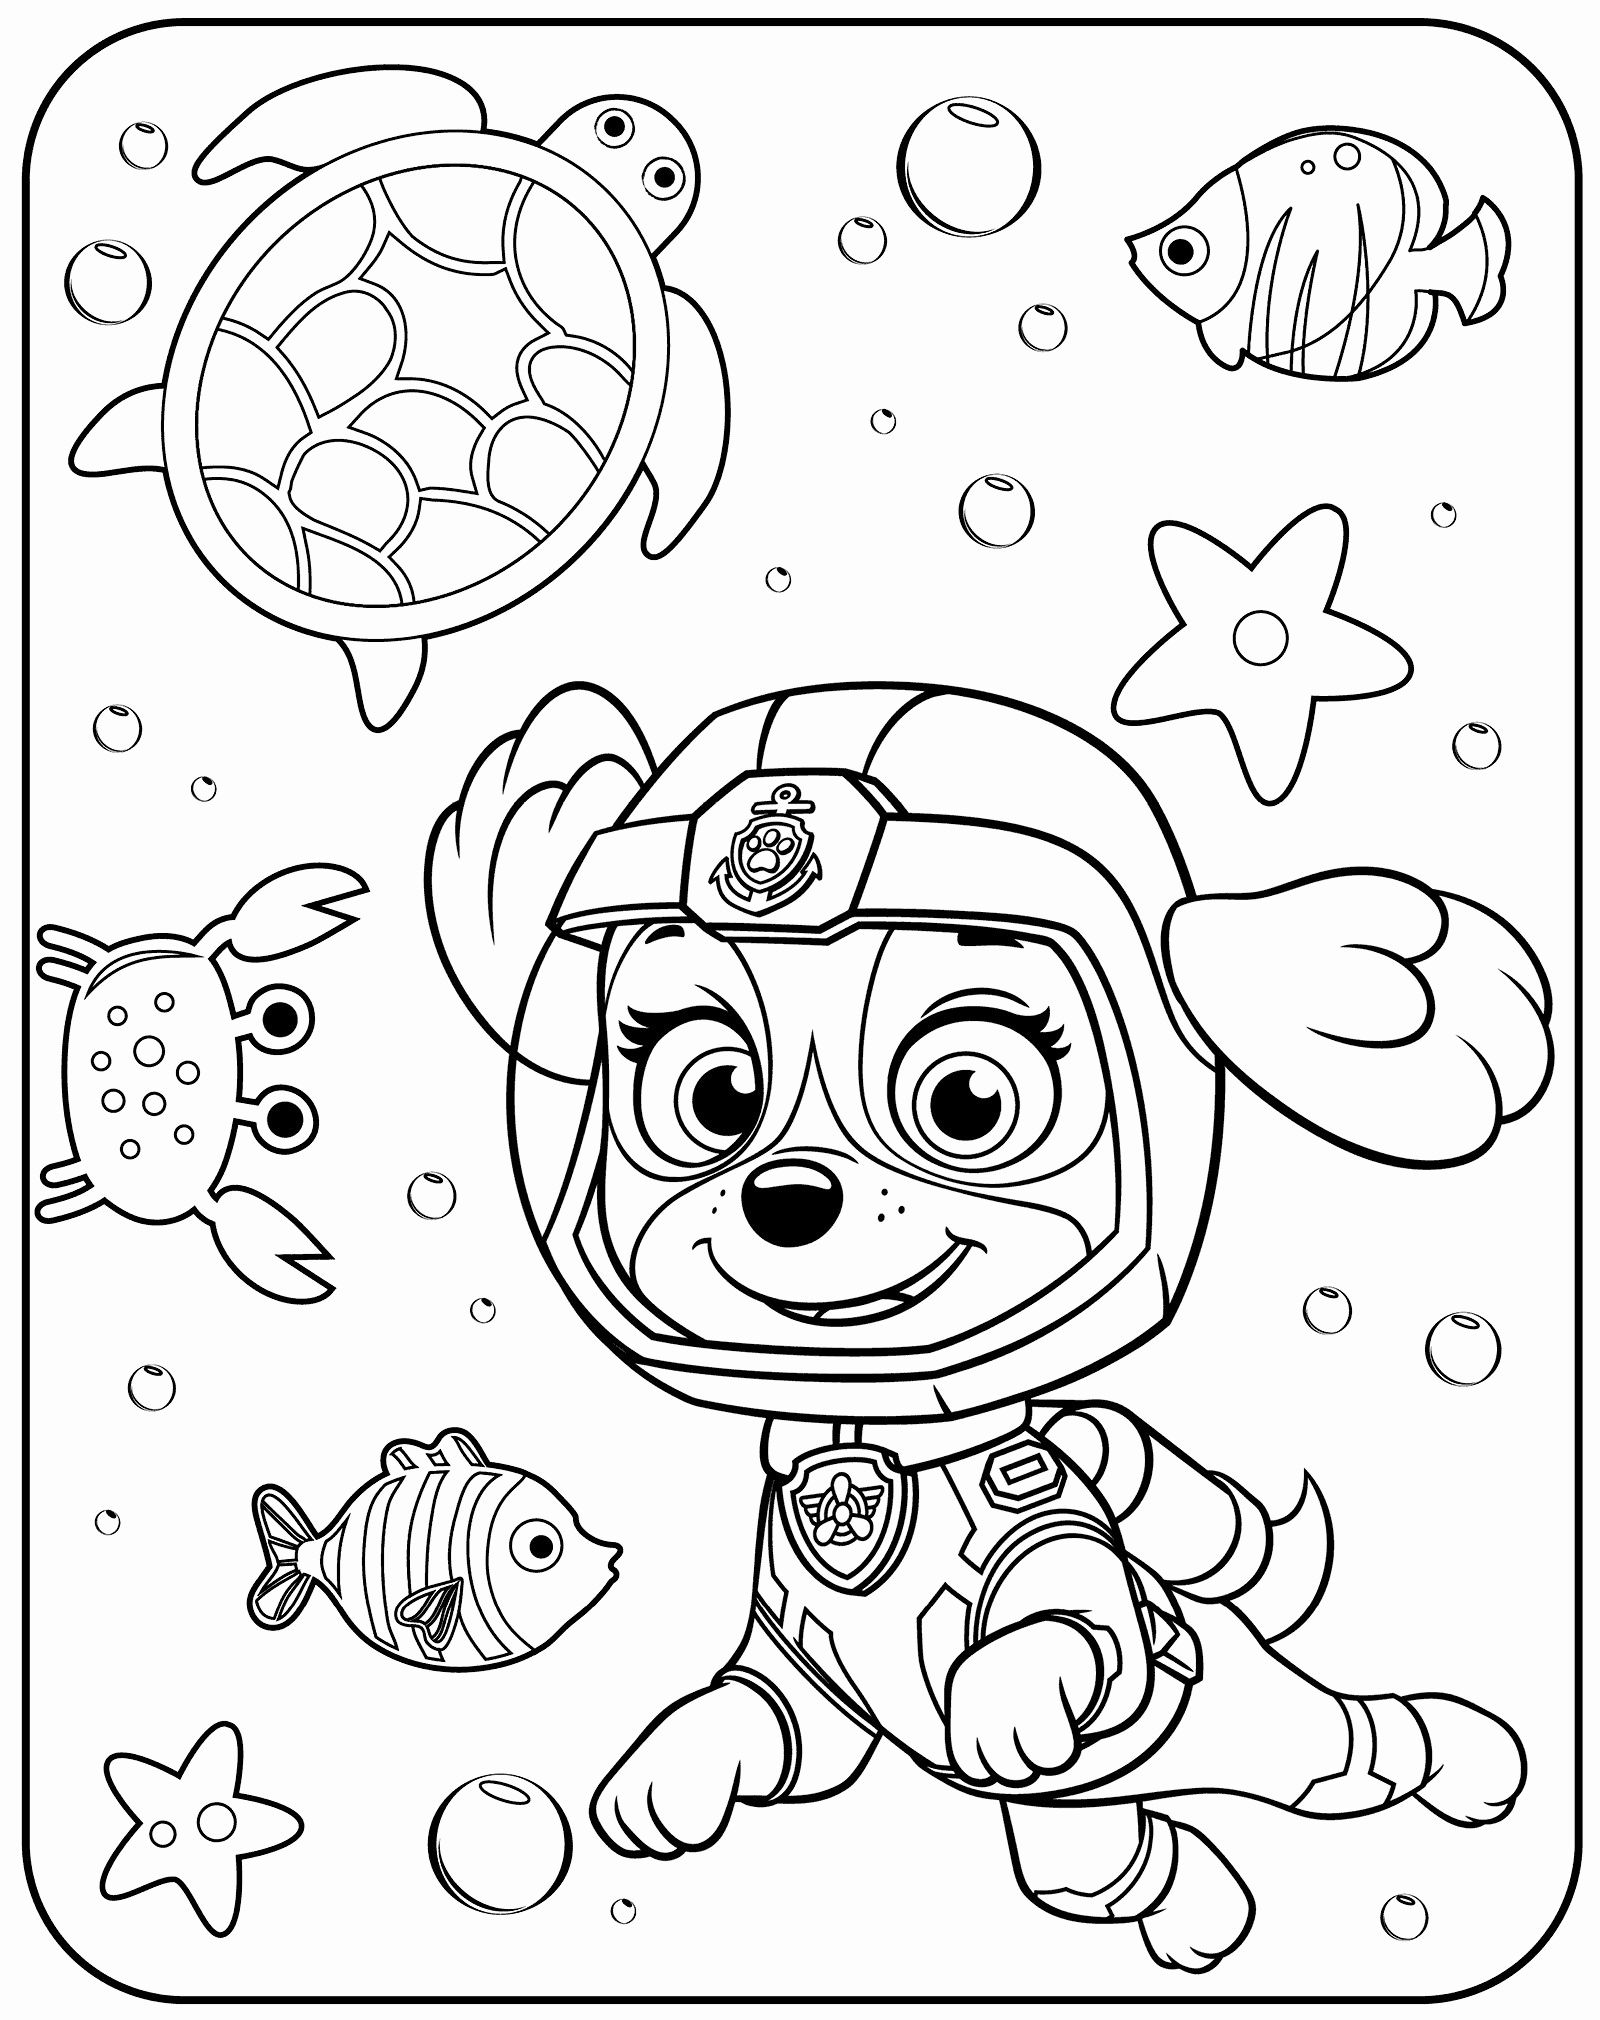 73 Awesome Photos Of Paw Patrol Coloring Sheets Paw Patrol Coloring Pages Paw Patrol Coloring Free Coloring Pages